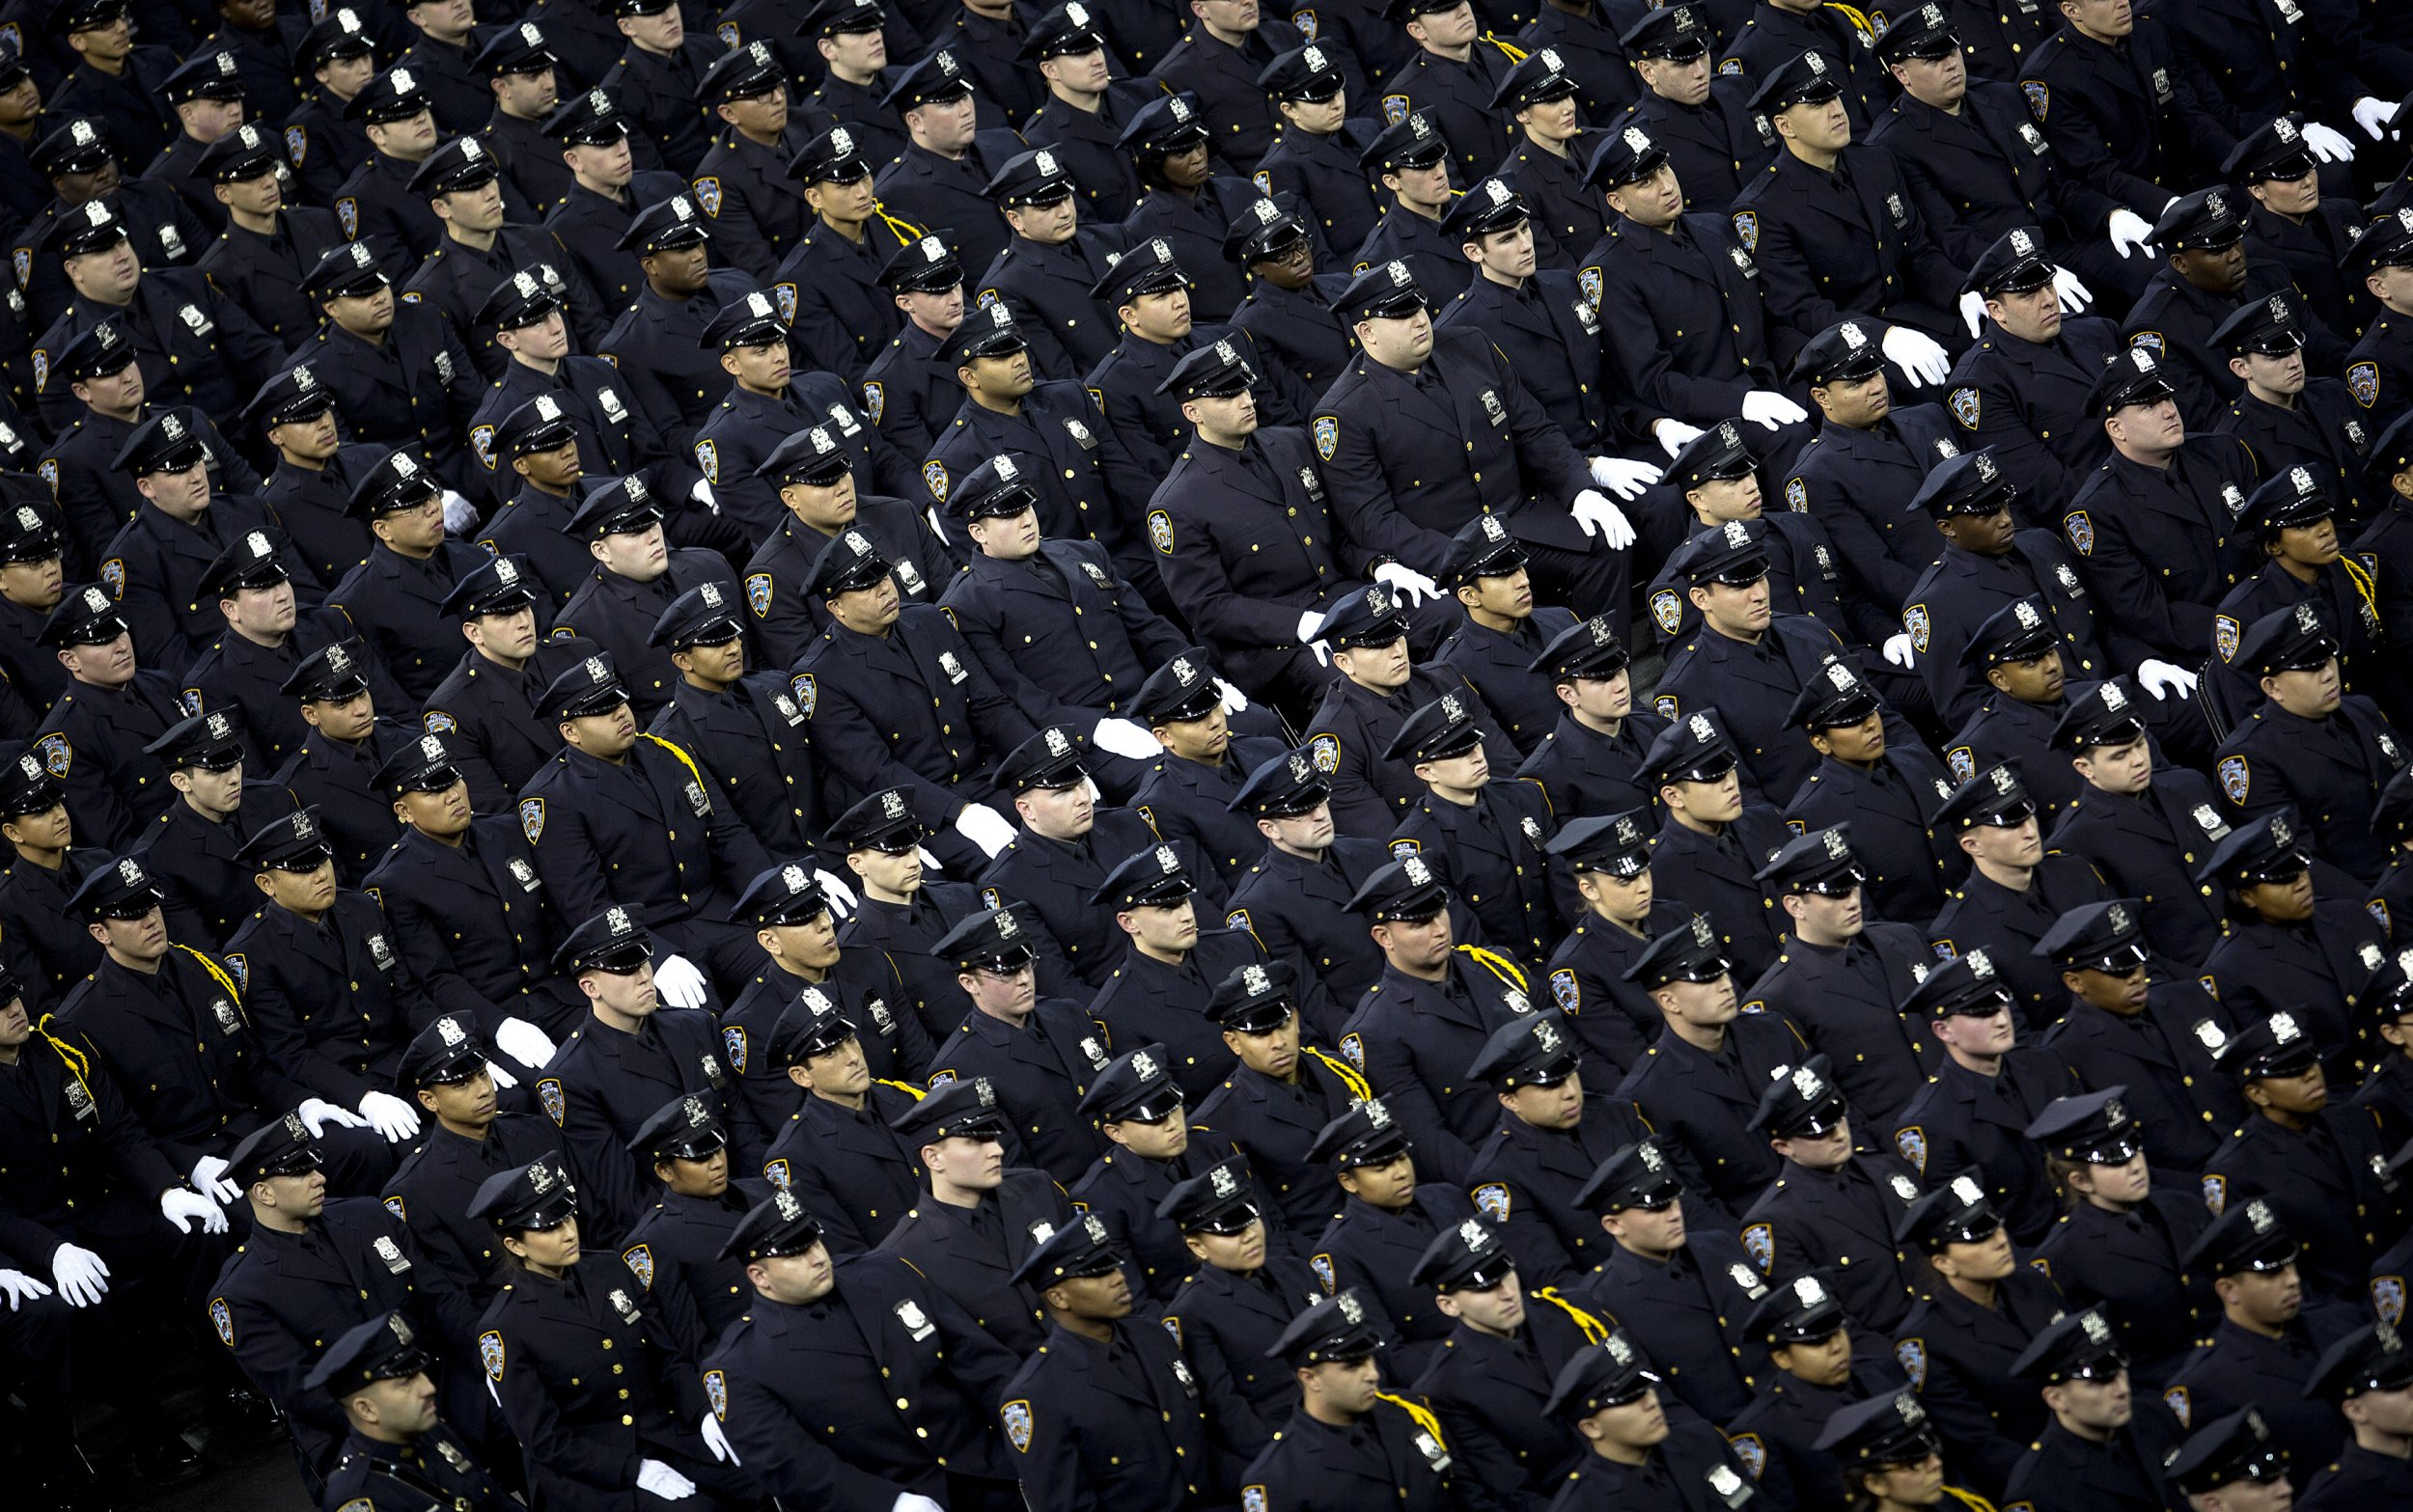 0616_NYPD